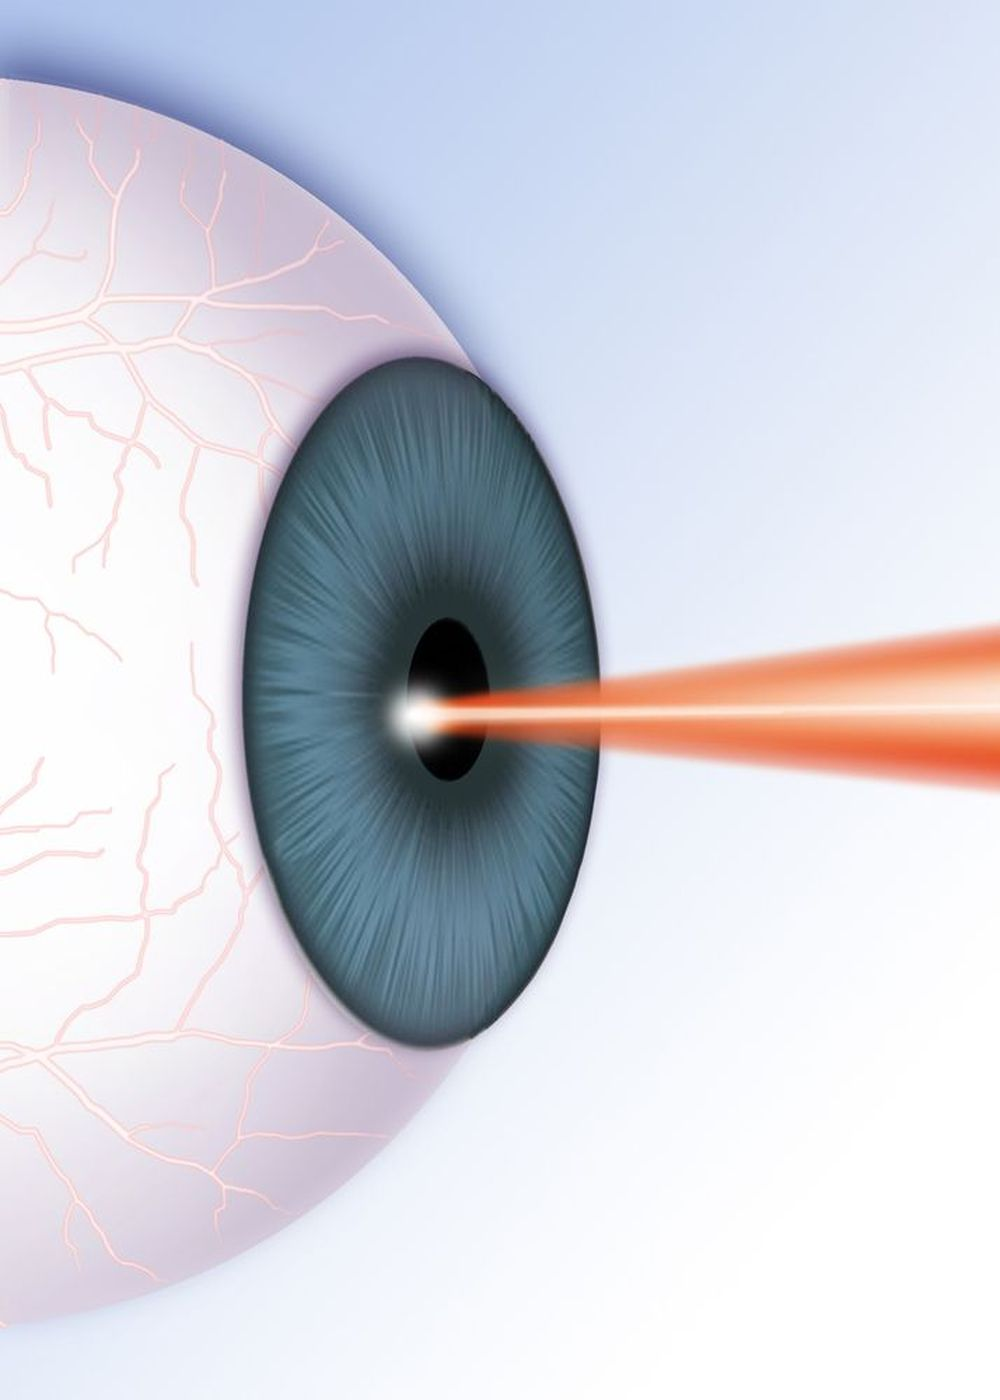 An illustrated example of a laser technique for an eye disorder